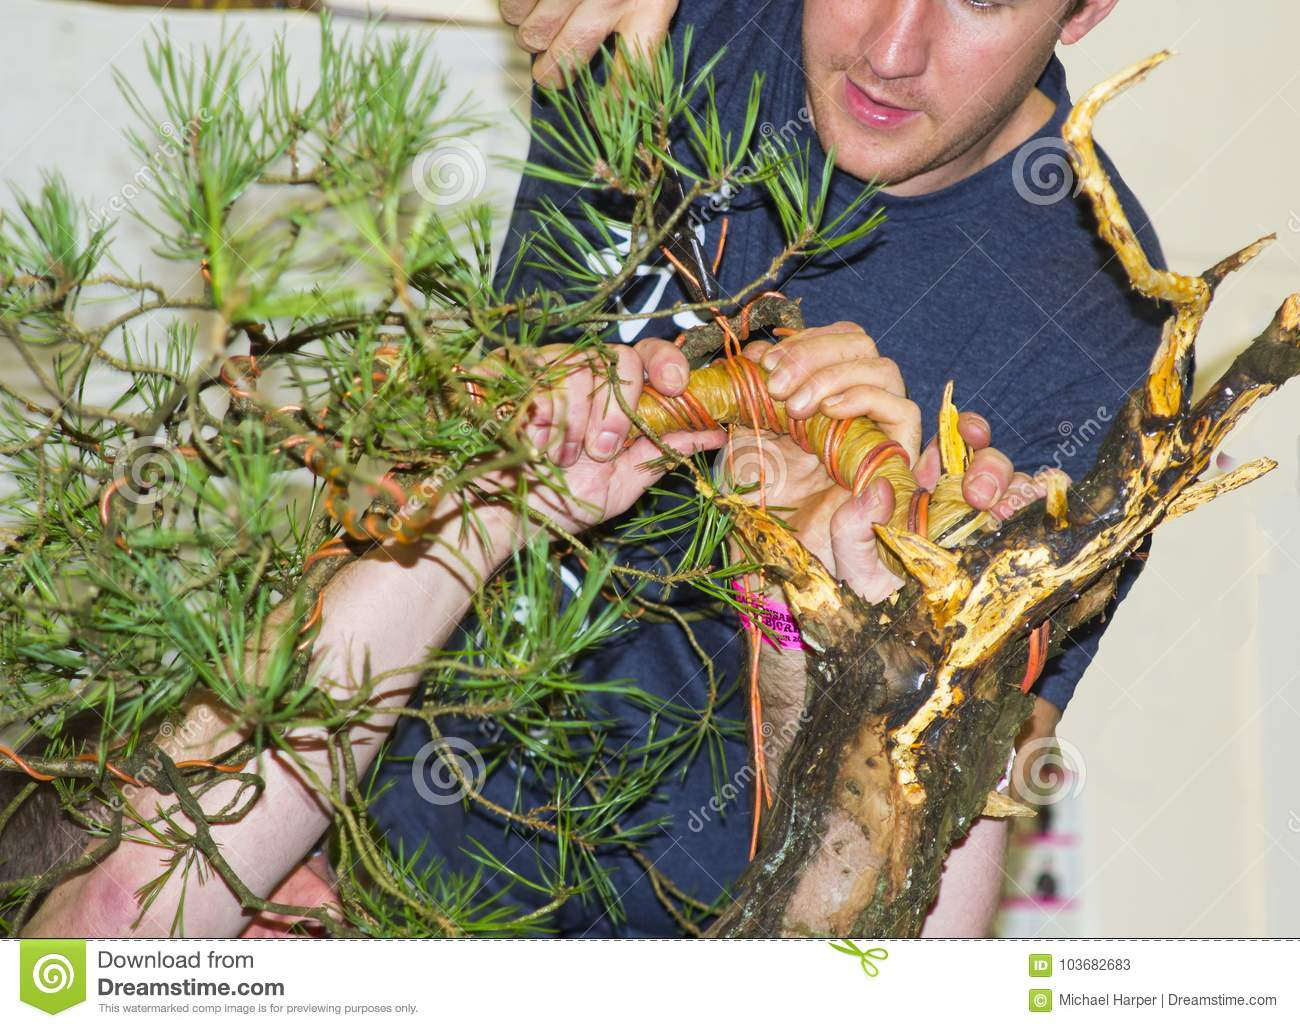 Scots Pine Bonsai Photos Free Royalty Free Stock Photos From Dreamstime